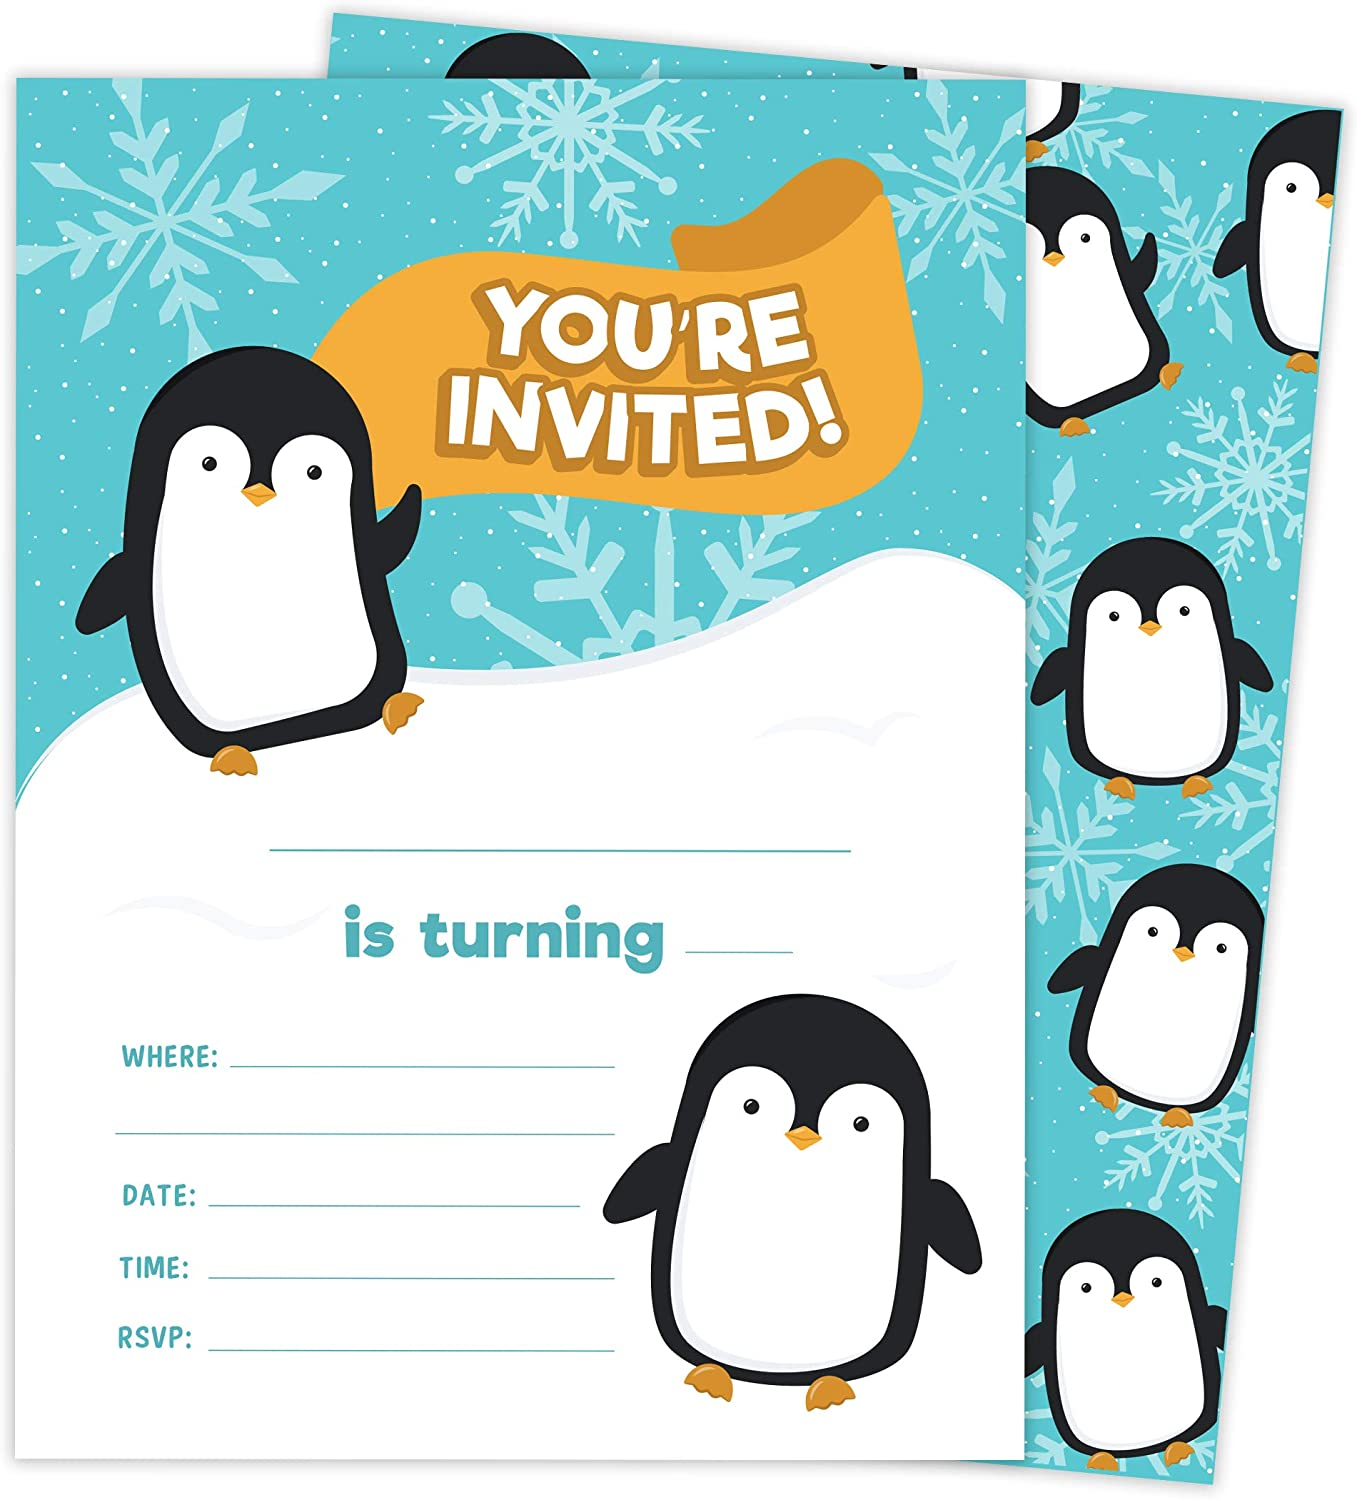 Penguin Design 1 Happy Birthday Invitations Invite Cards (25 Count) With Envelopes and Seal Stickers Vinyl Girls Kids Party (25ct)